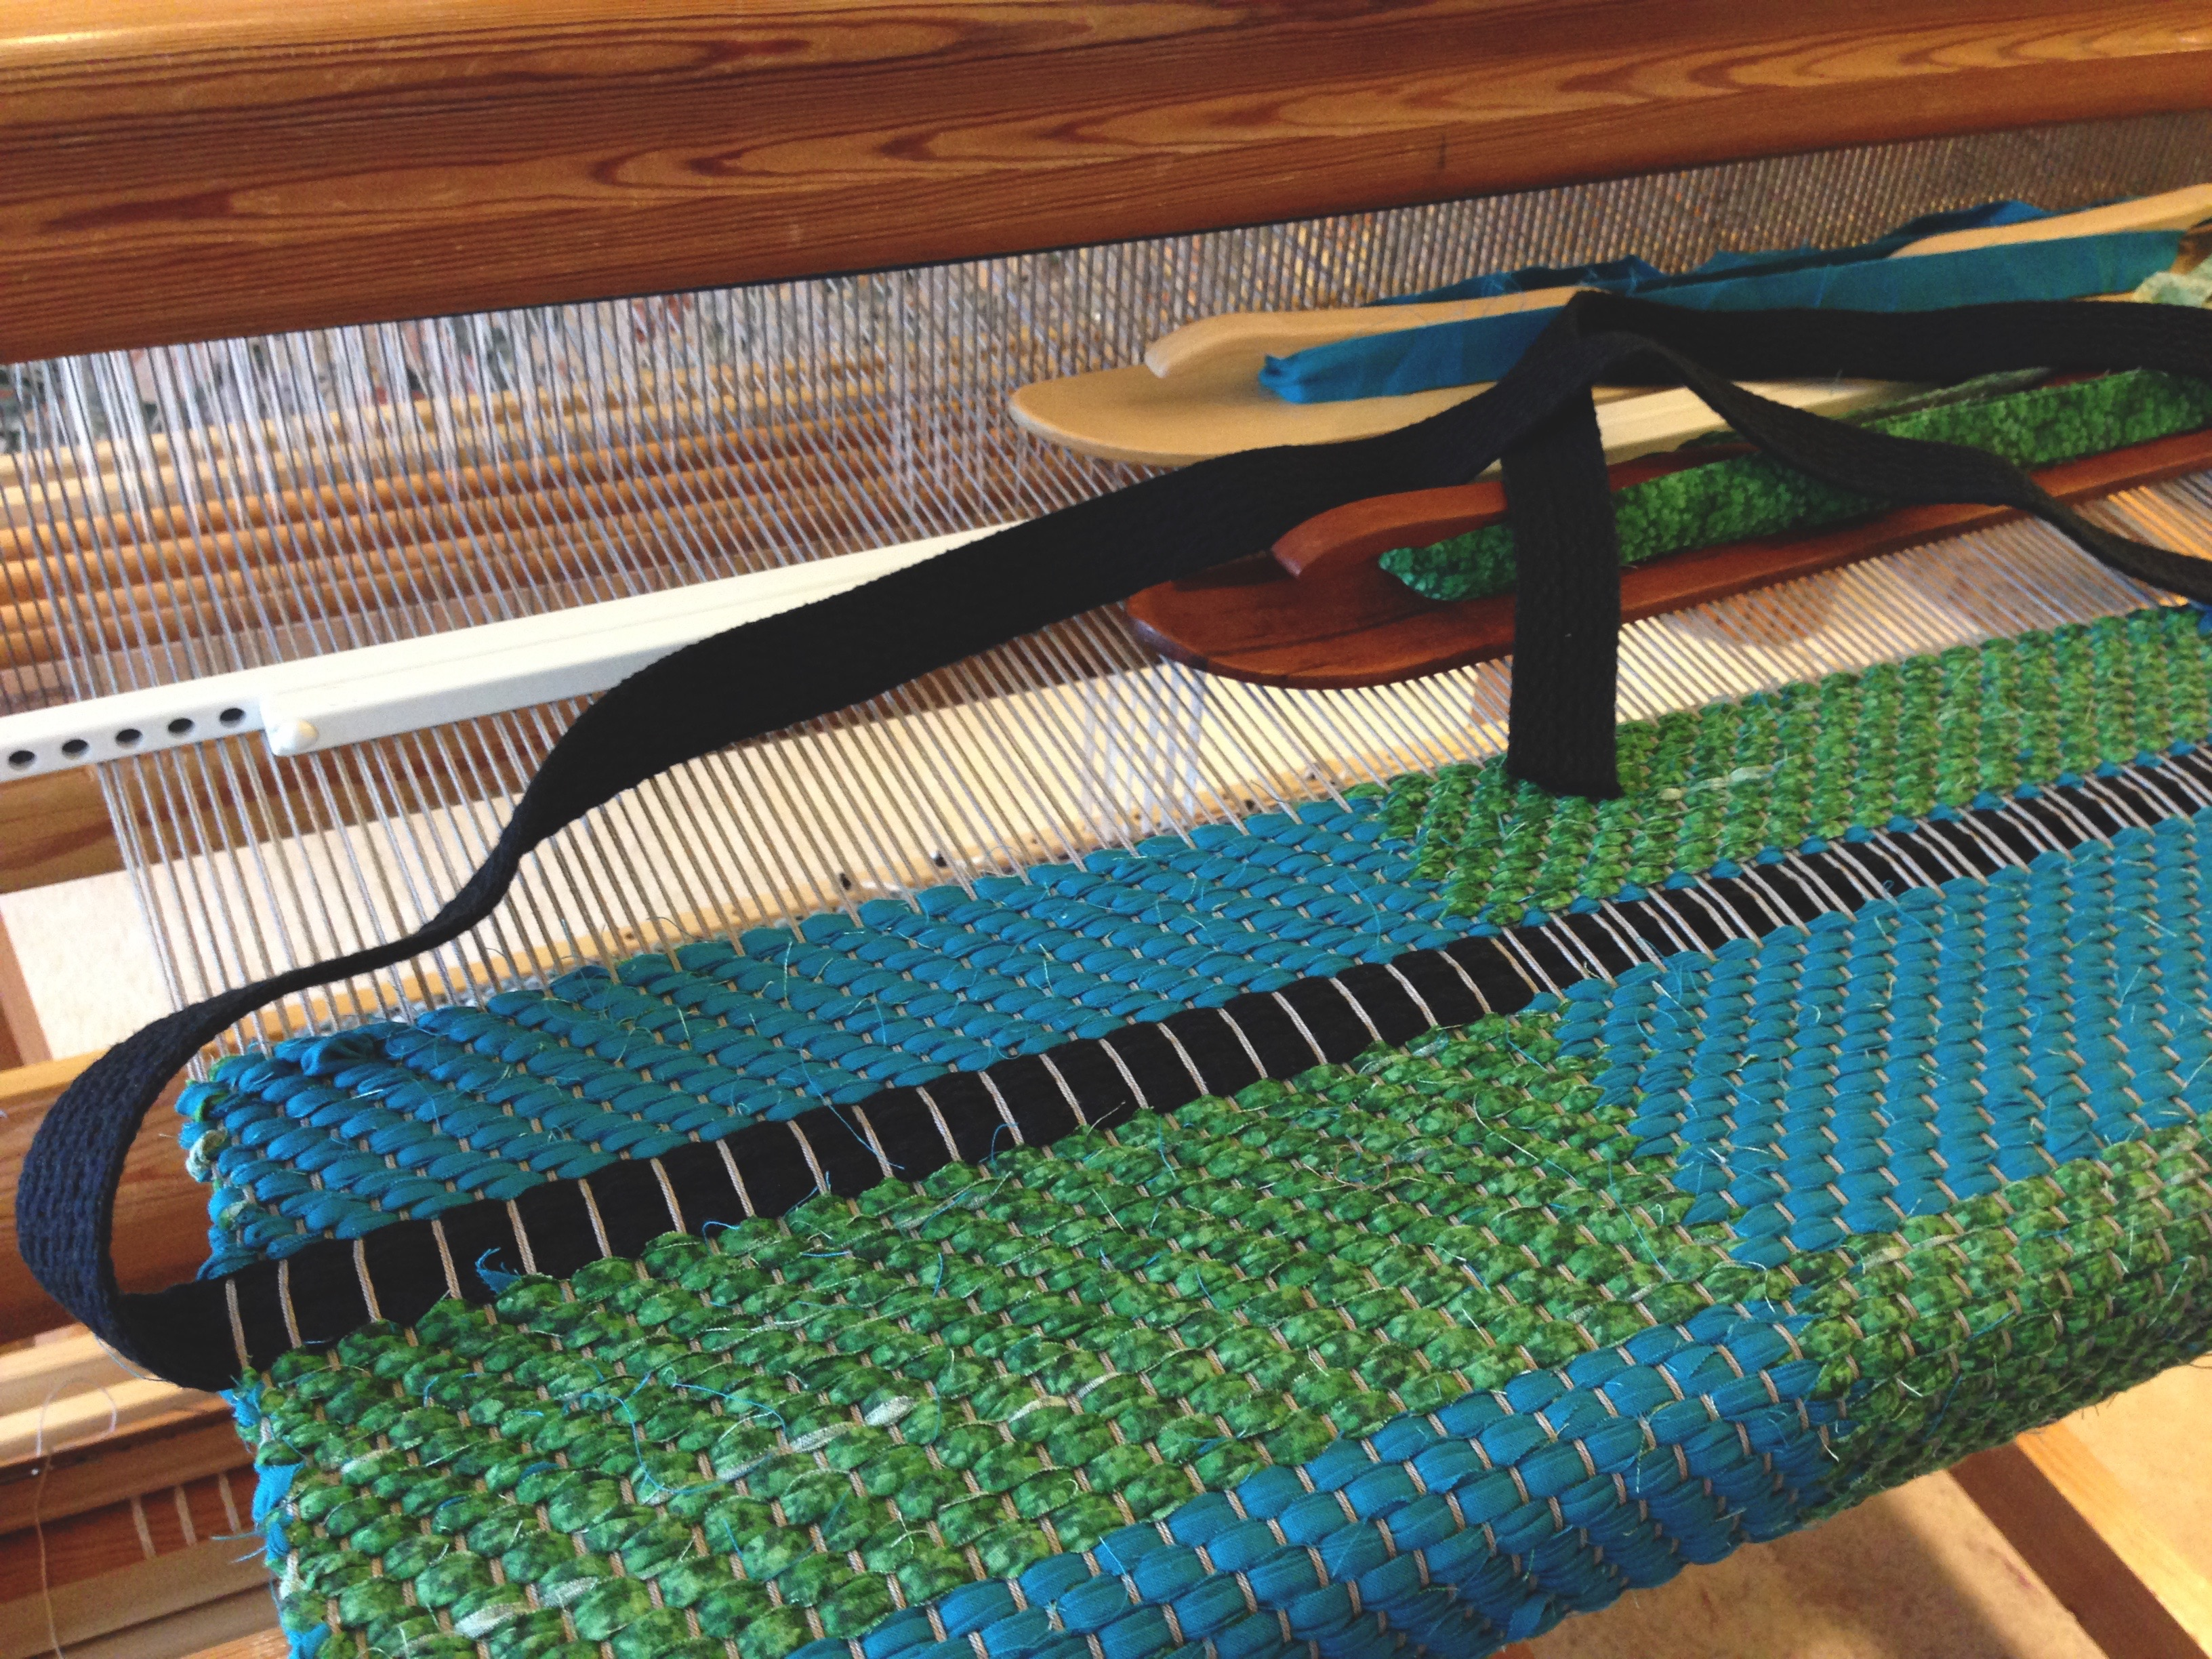 Weaving Bag Handles Into The Rag Rug